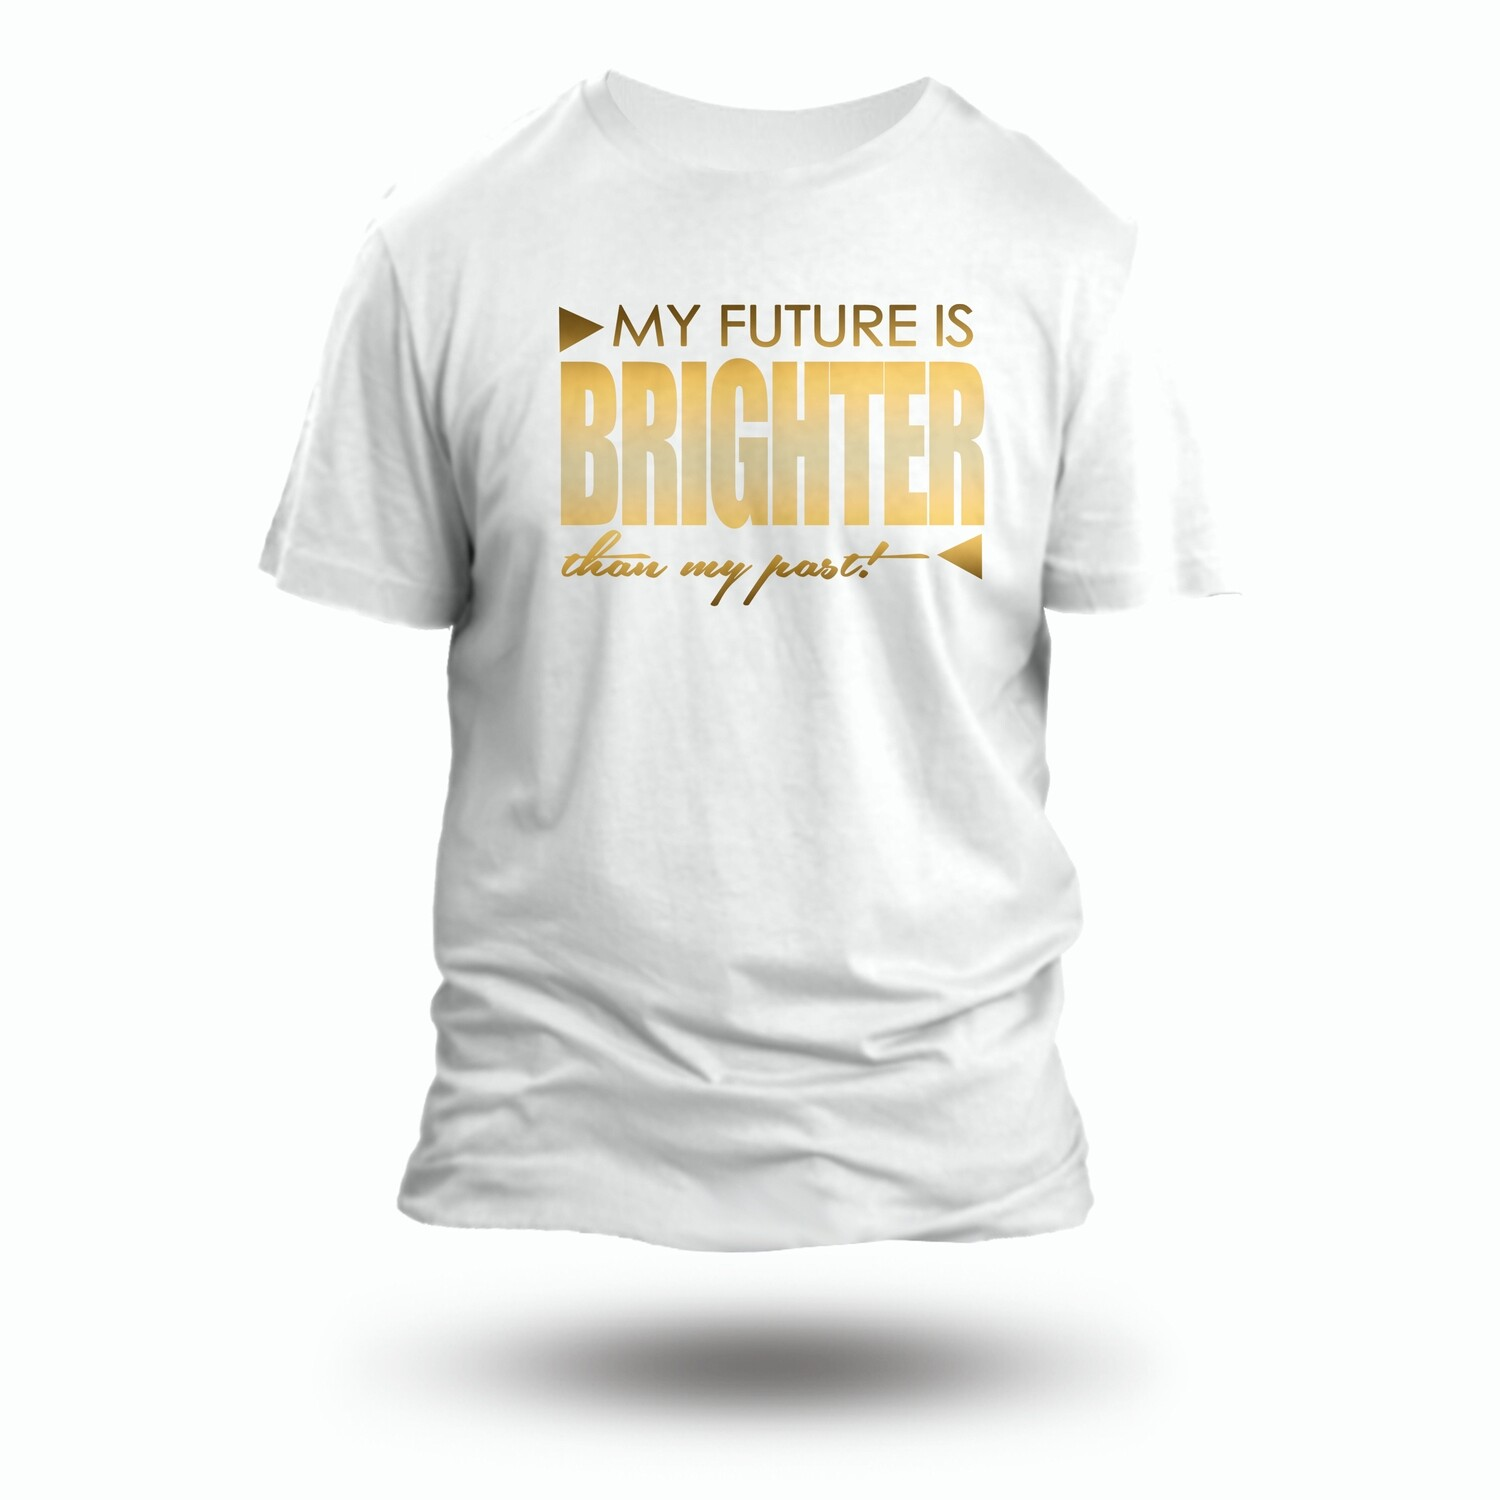 Bright Side T-shirt with Gold Glitter Letters